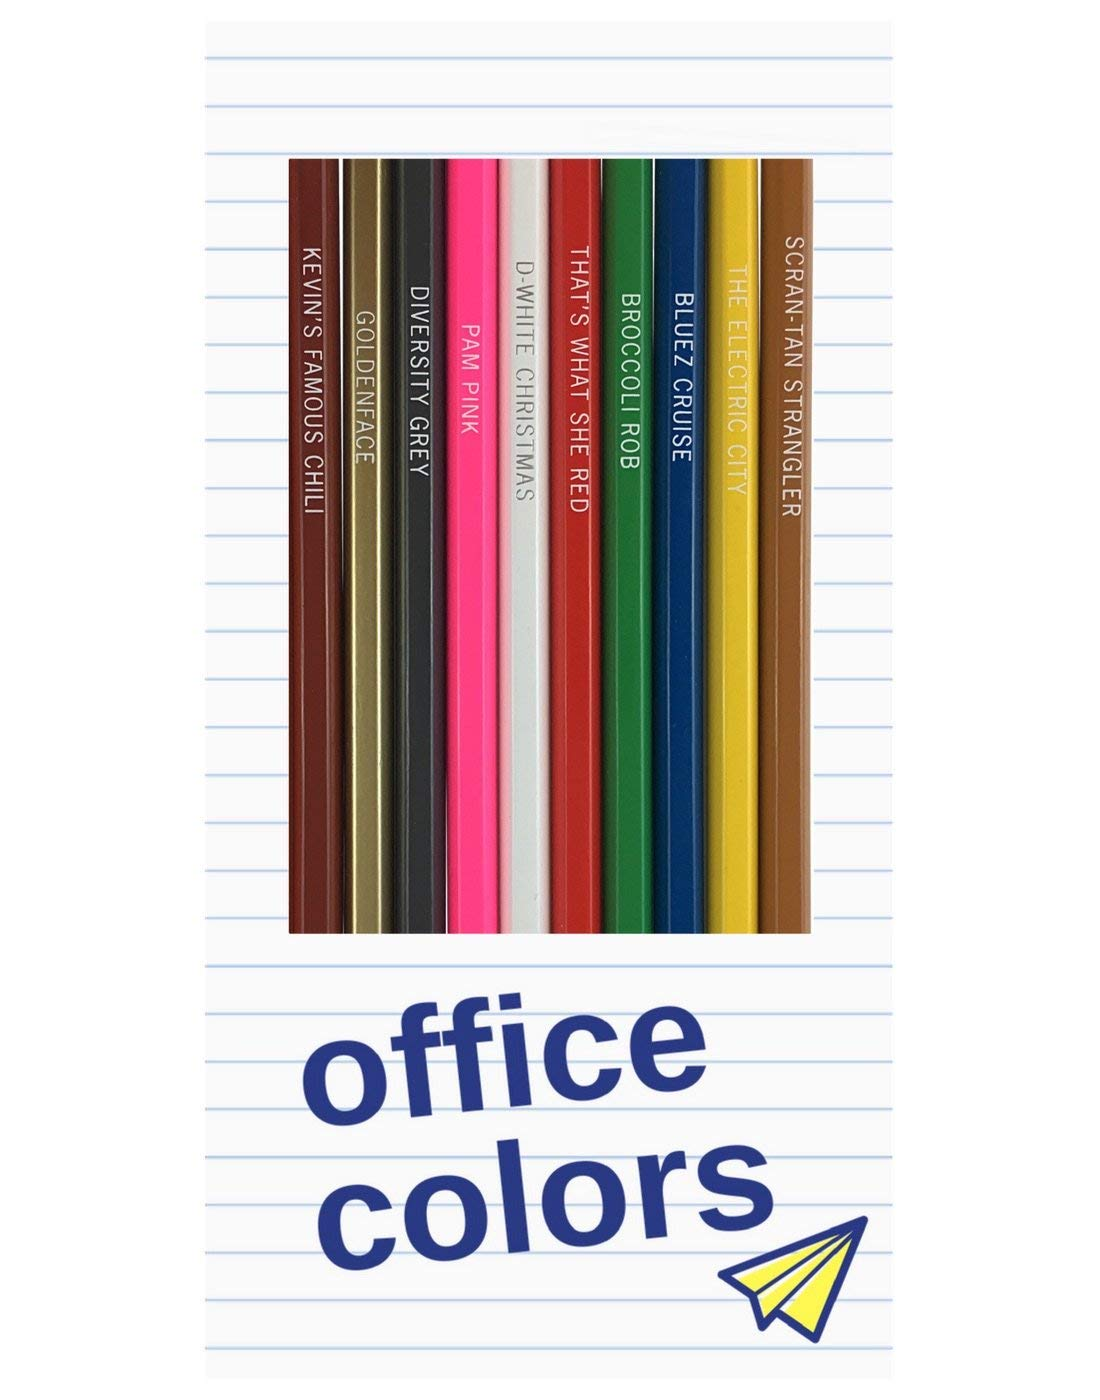 Office Colors: 12 'The Office' TV Parody Colored Pencils by Pun Labs